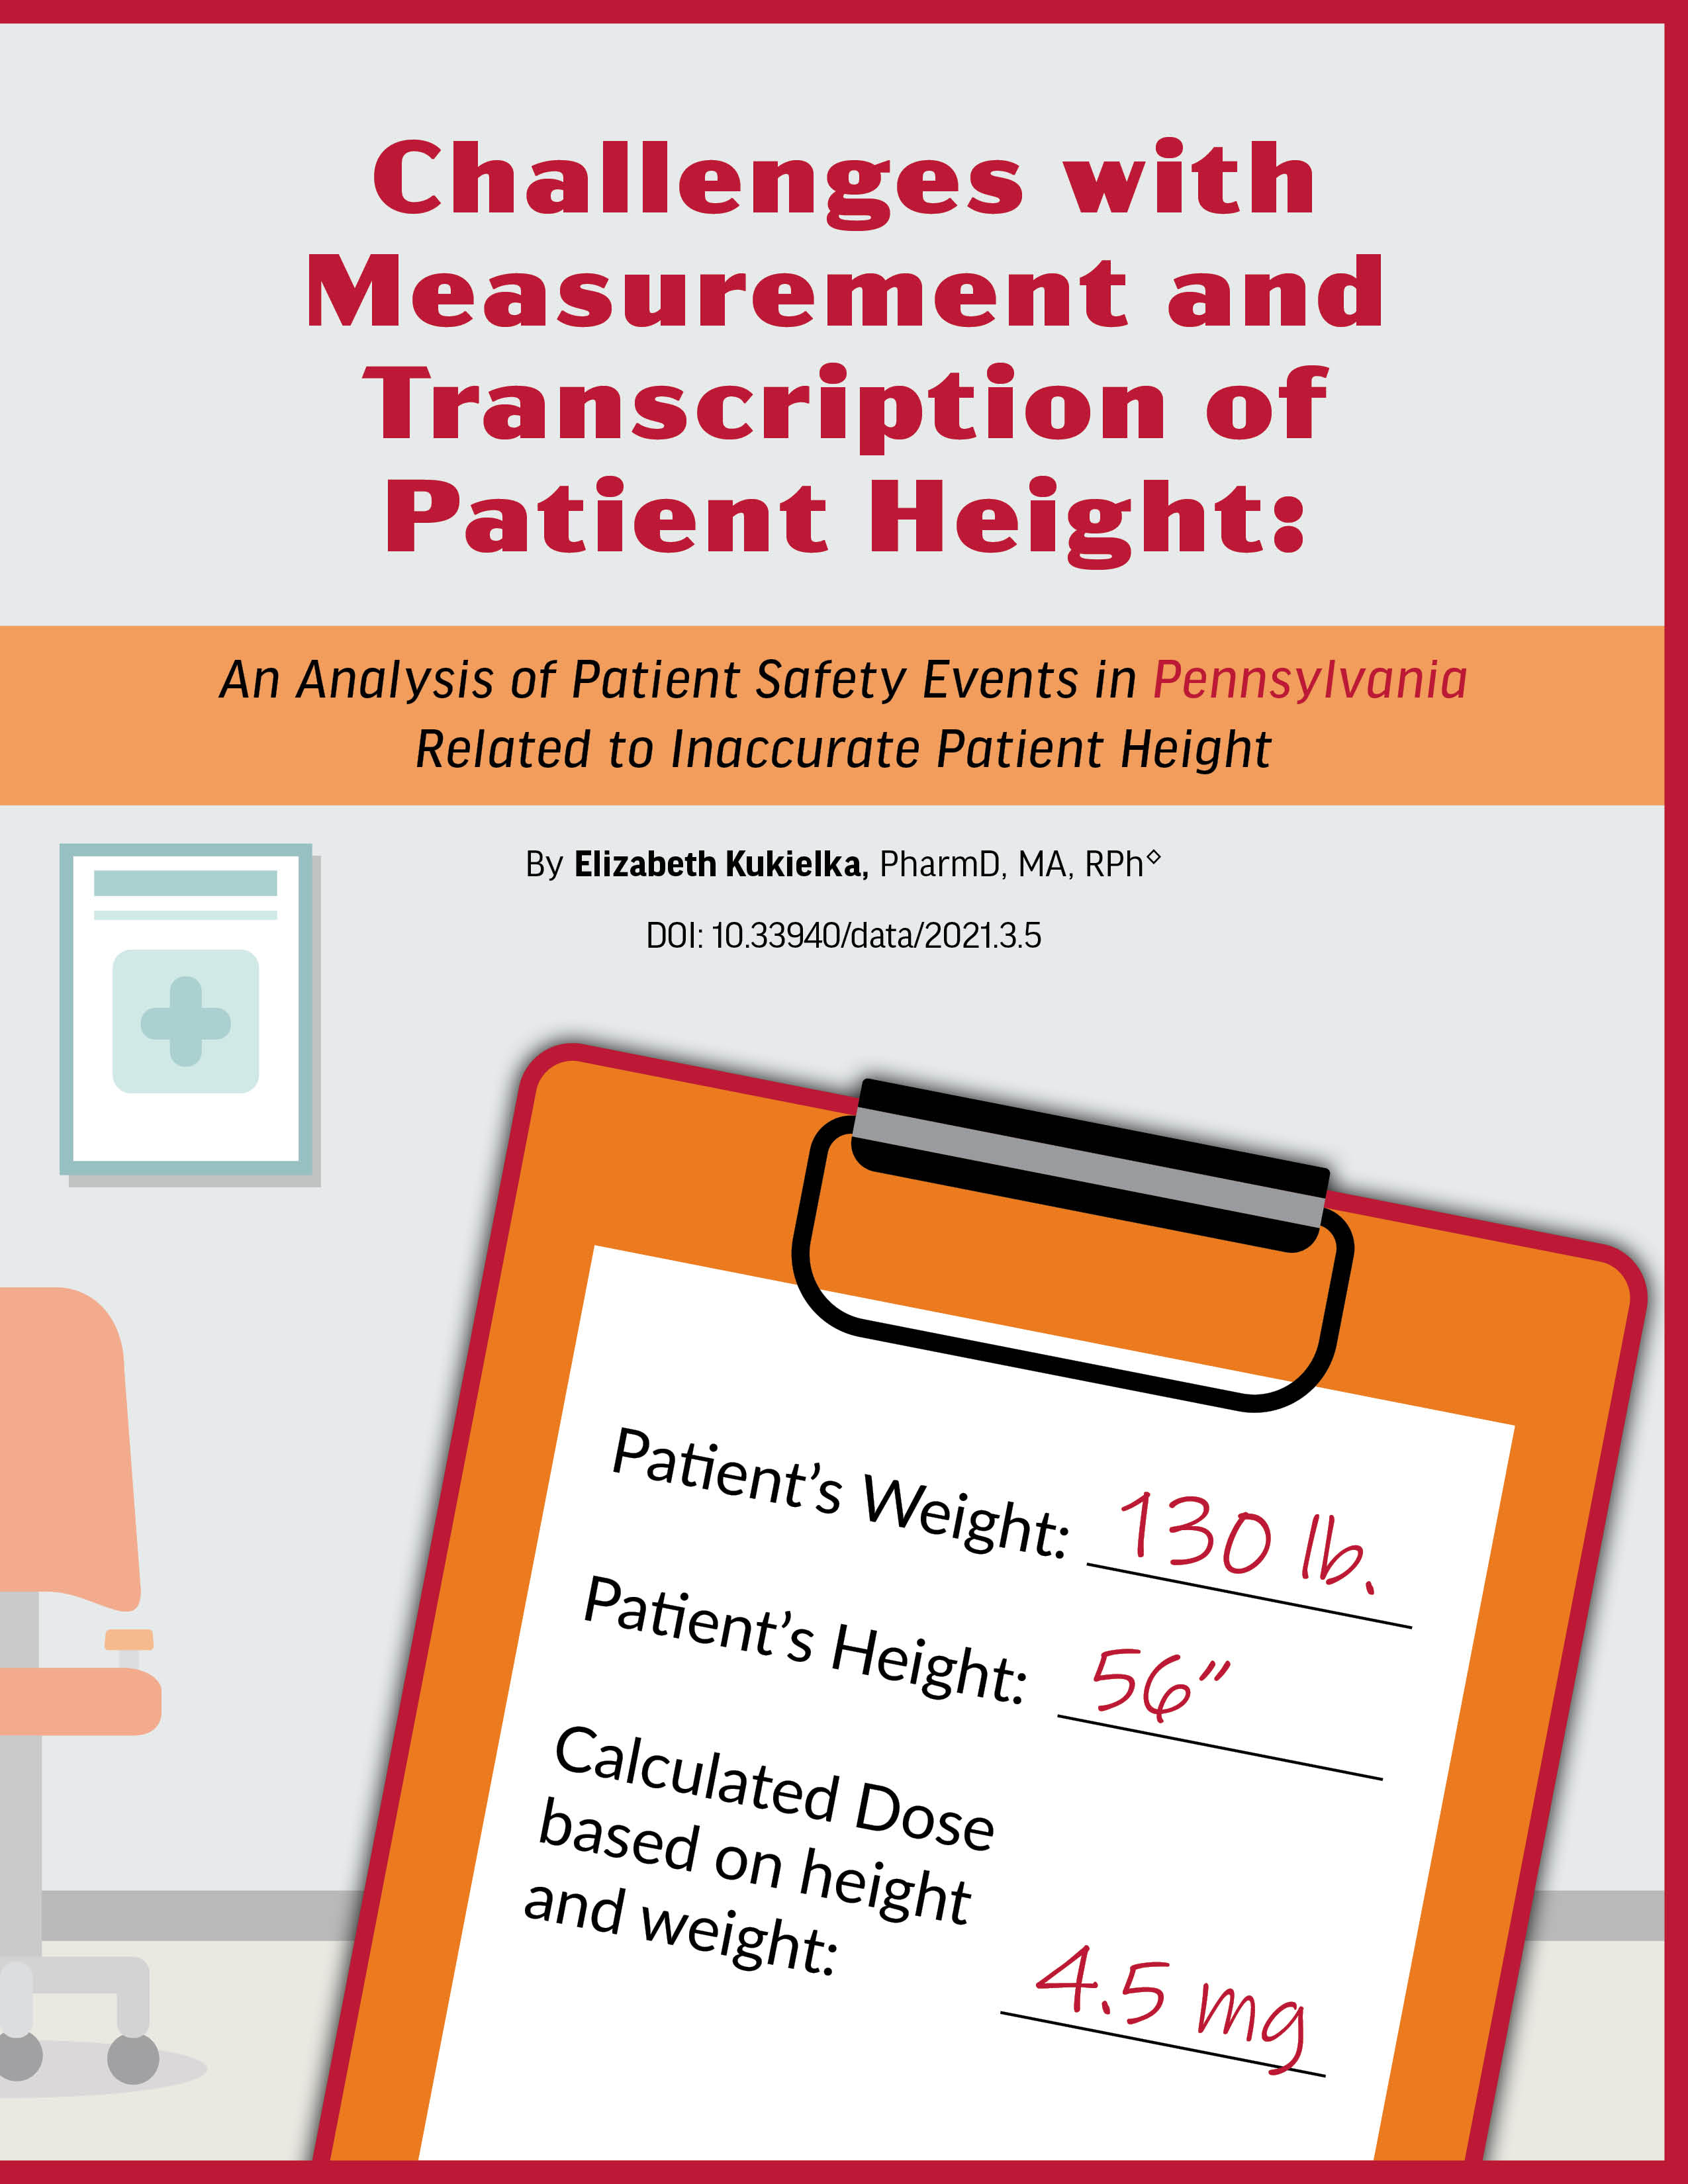 patient chart with weight, height and medication dose, with waiting room in background